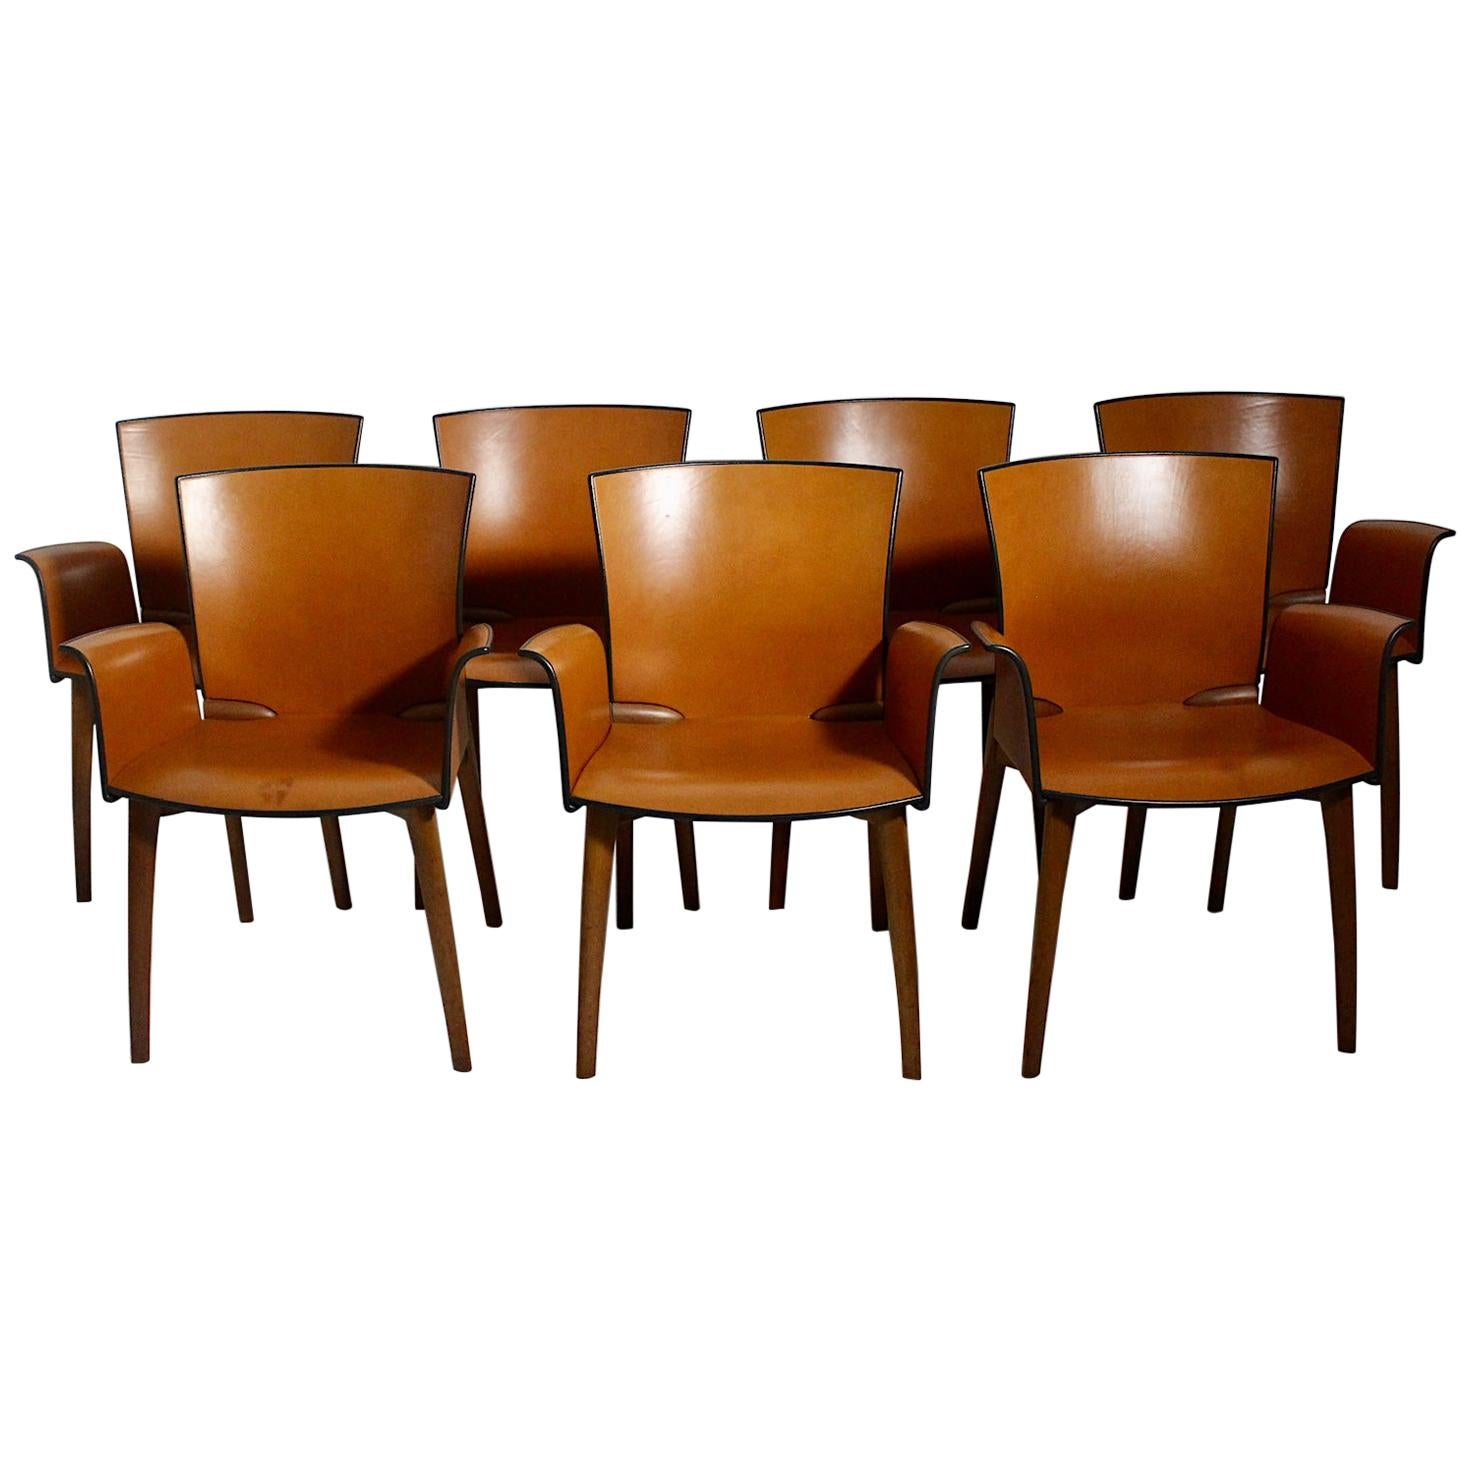 Modern Seven Vintage Cognac Leather Teak Dining Chairs Cassina, 1990s, Italy